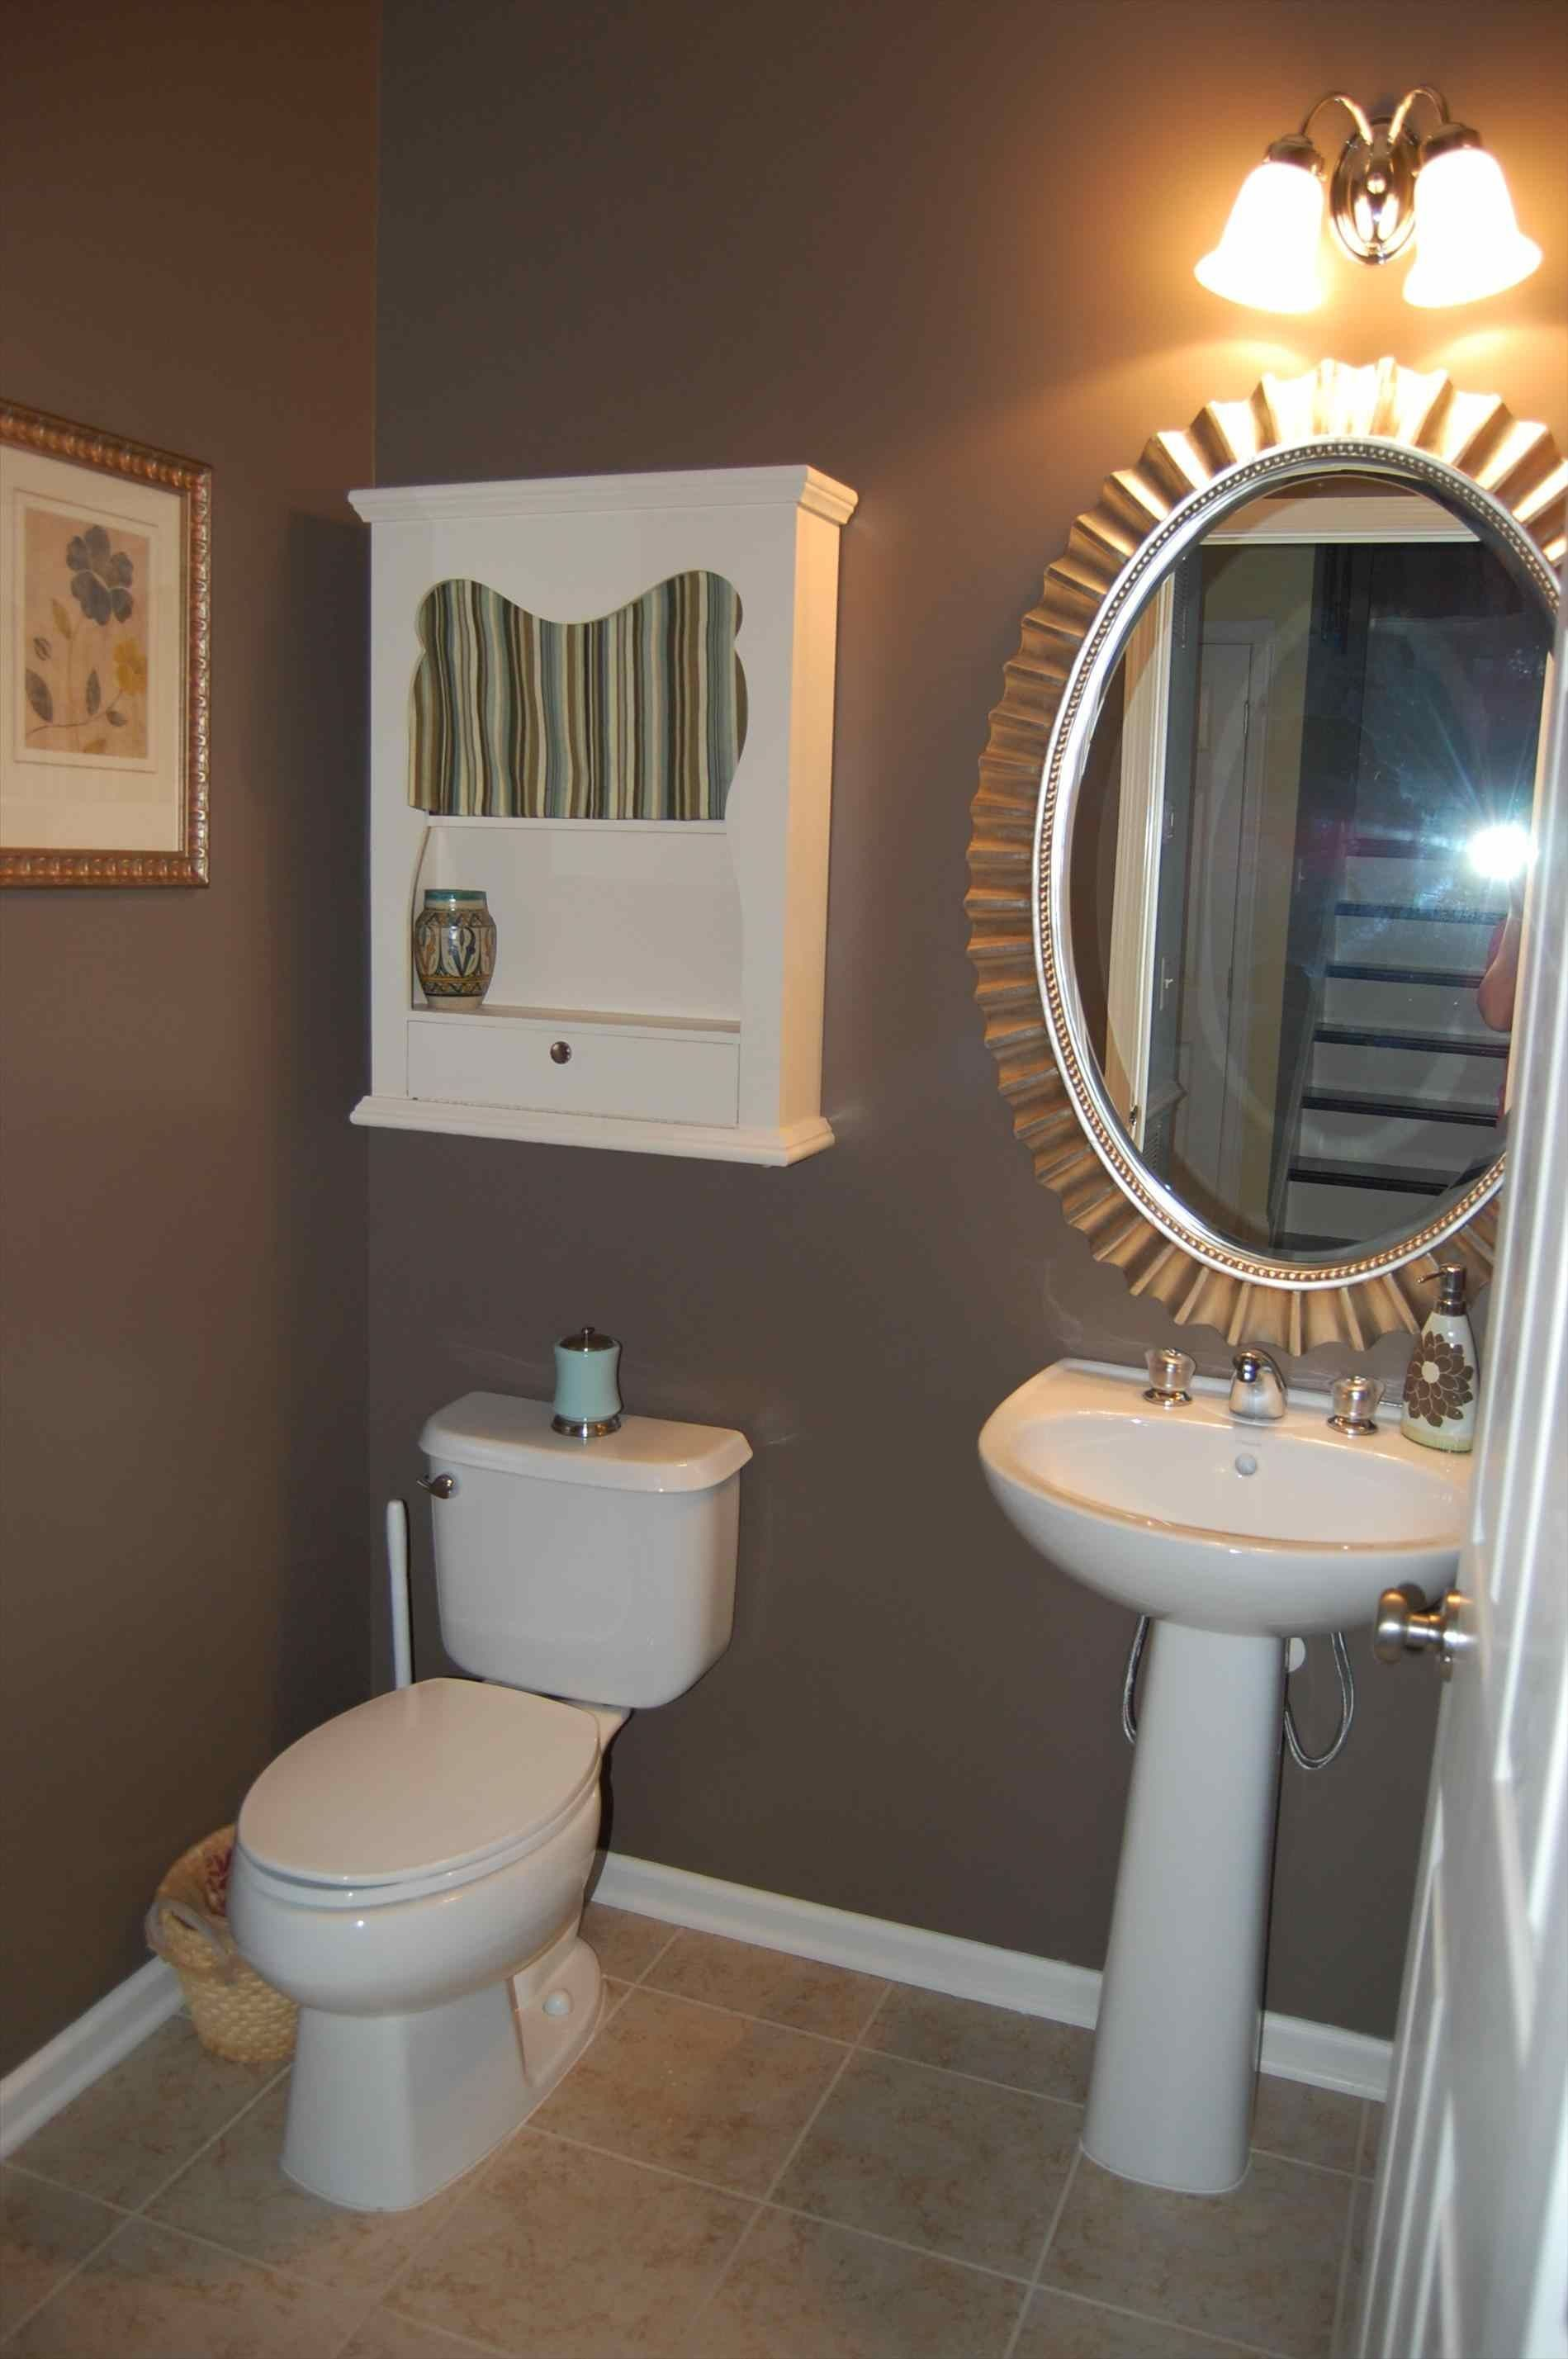 Paint Colors For A Small Bathroom With No Natural Light Small Bathroom Colors Bathroom Paint Colors Bathroom Colors